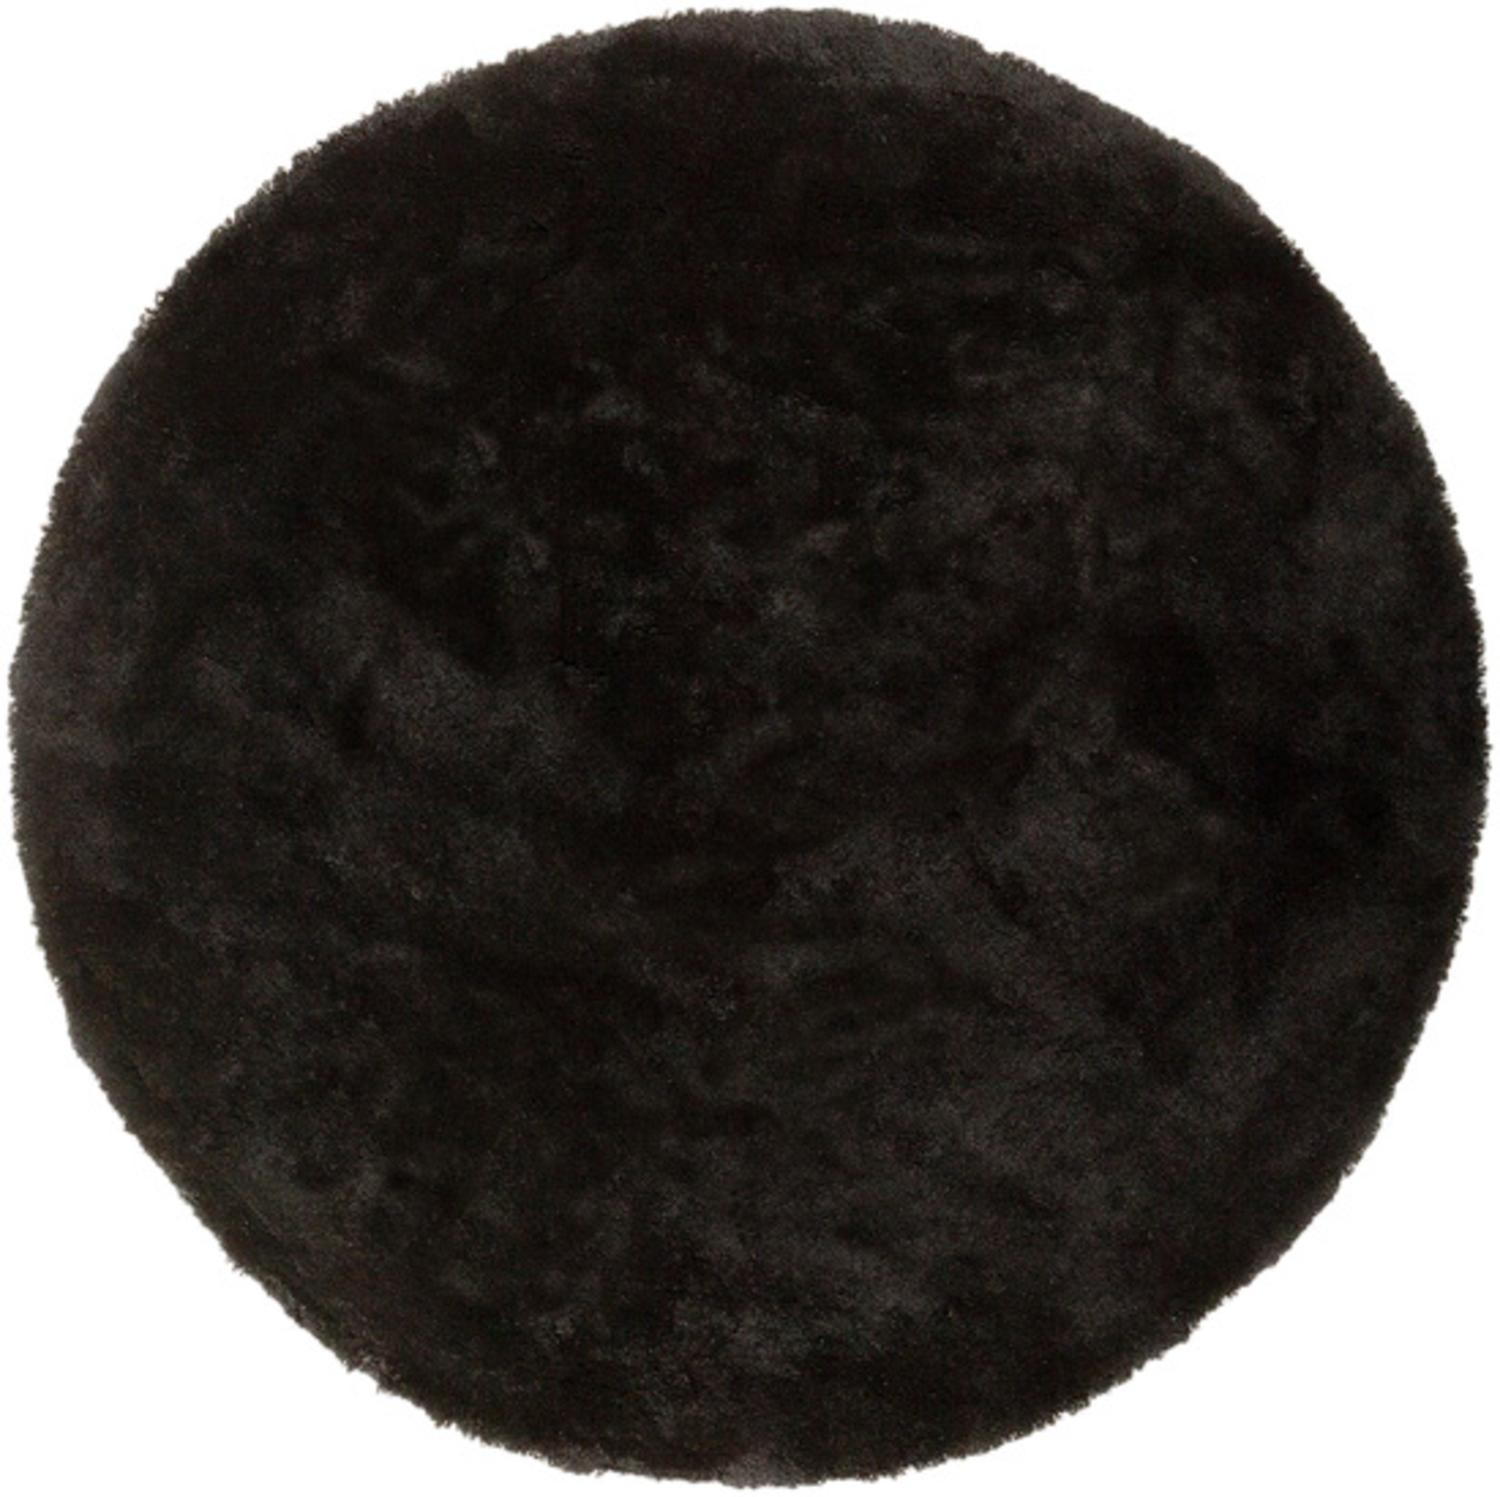 8' Calming Spectrum Jet Black Hand Woven Ultra Plush Round Area Throw Rug